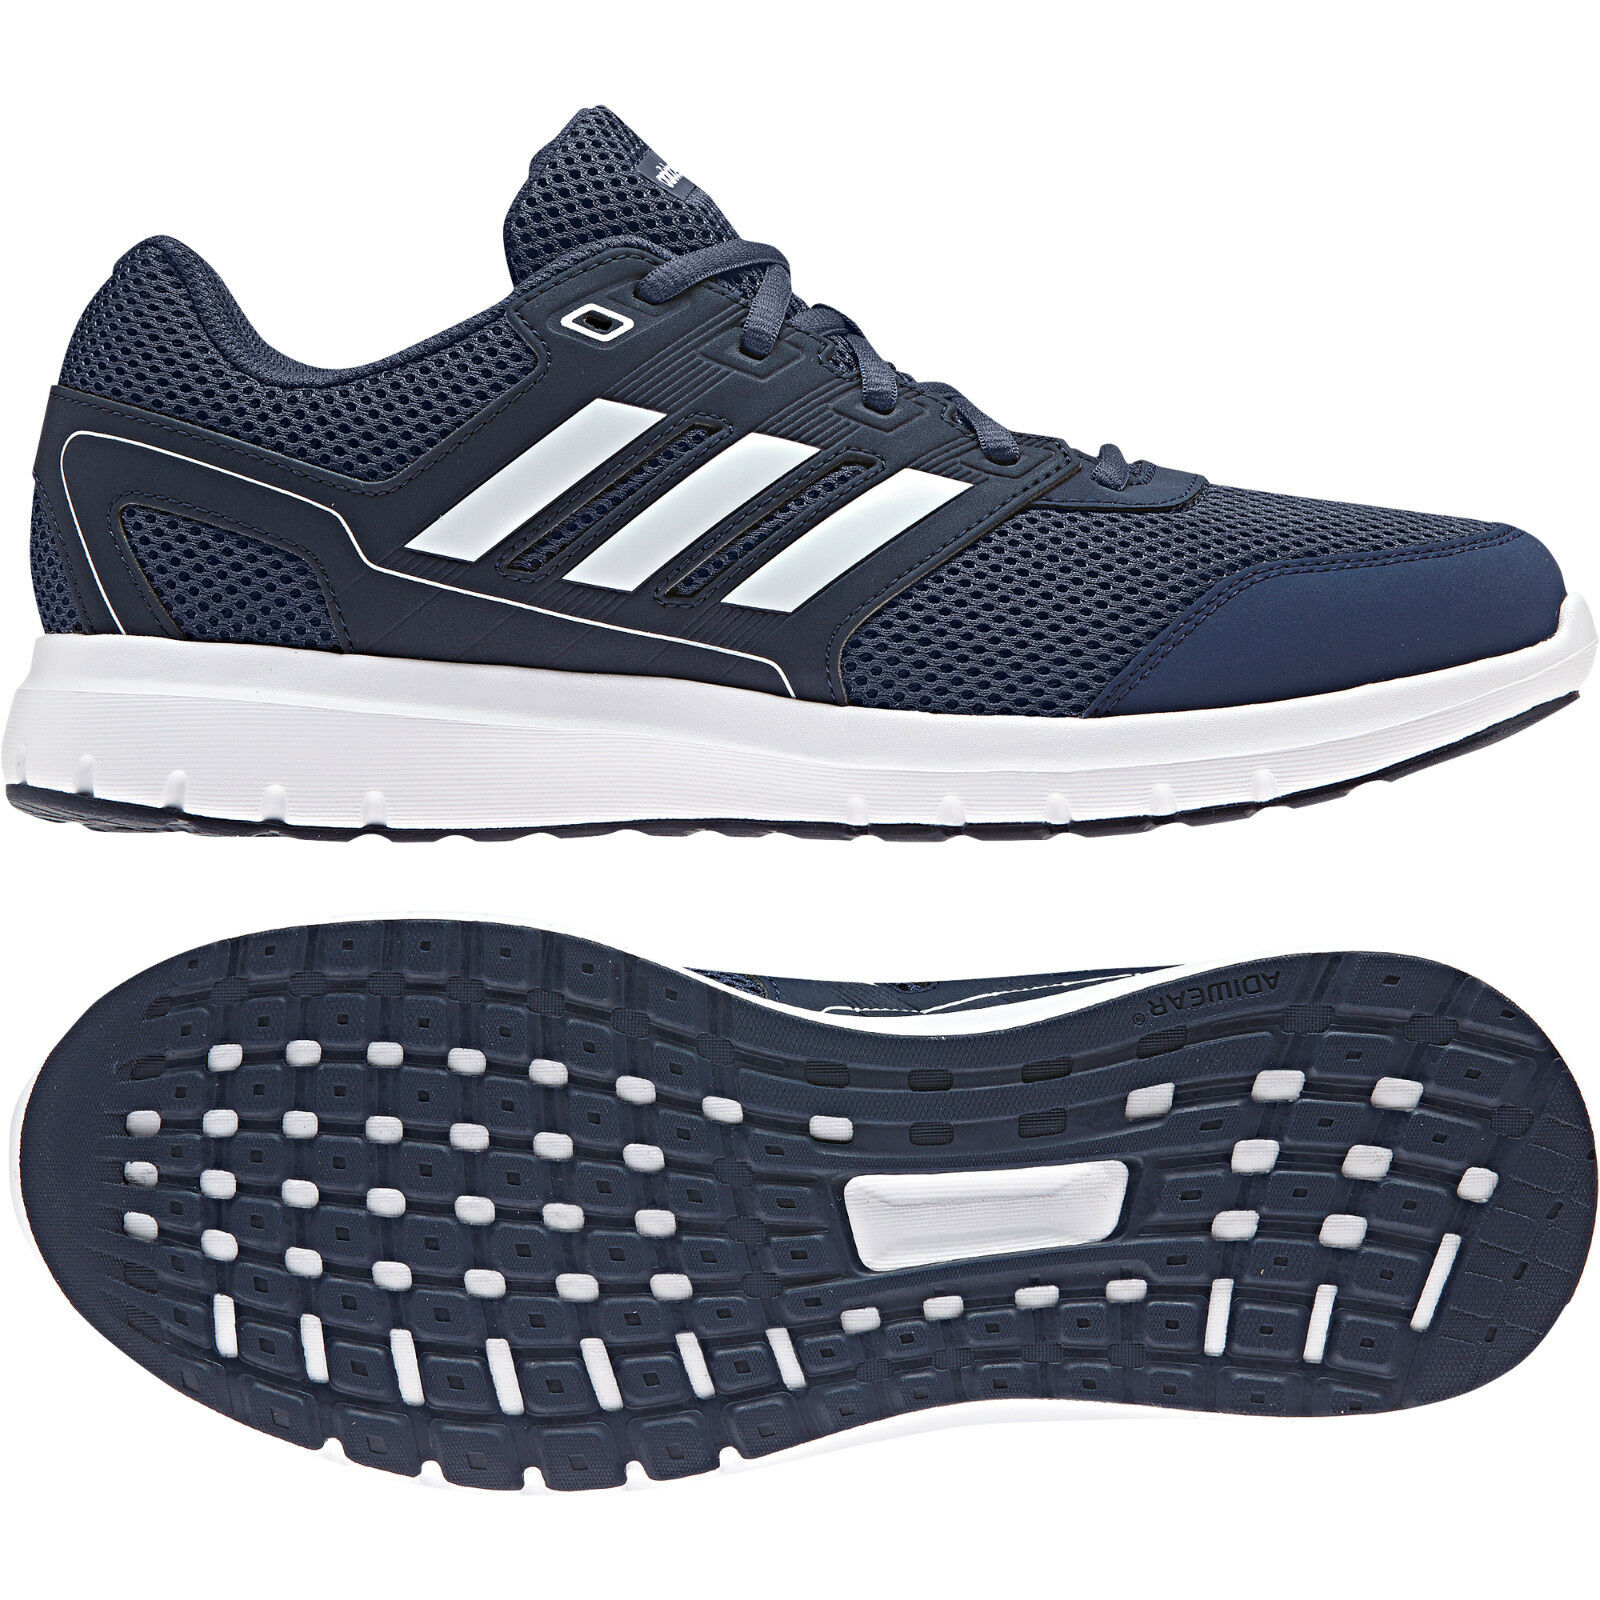 6e3377a32 Adidas Men Running Shoes Duramo Lite 2.0 Training Work Work Work Out Gym  Blue New CG4048 13ed59